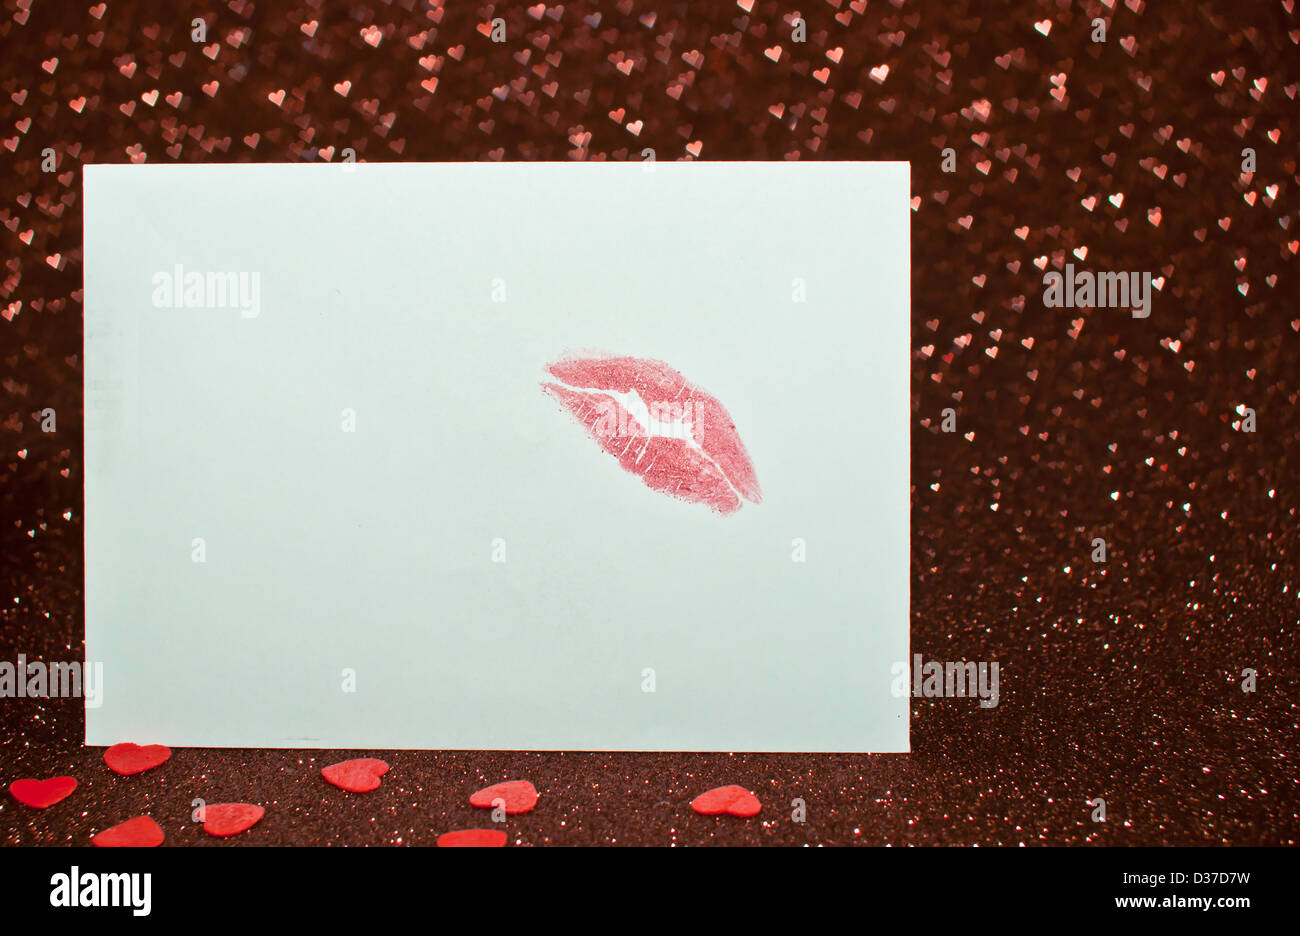 Invitation, Shape, Red, Horizontal, Expressing Positivity, Human Lips, Human Mouth, Gift, Sign, Cosmetics, February, - Stock Image